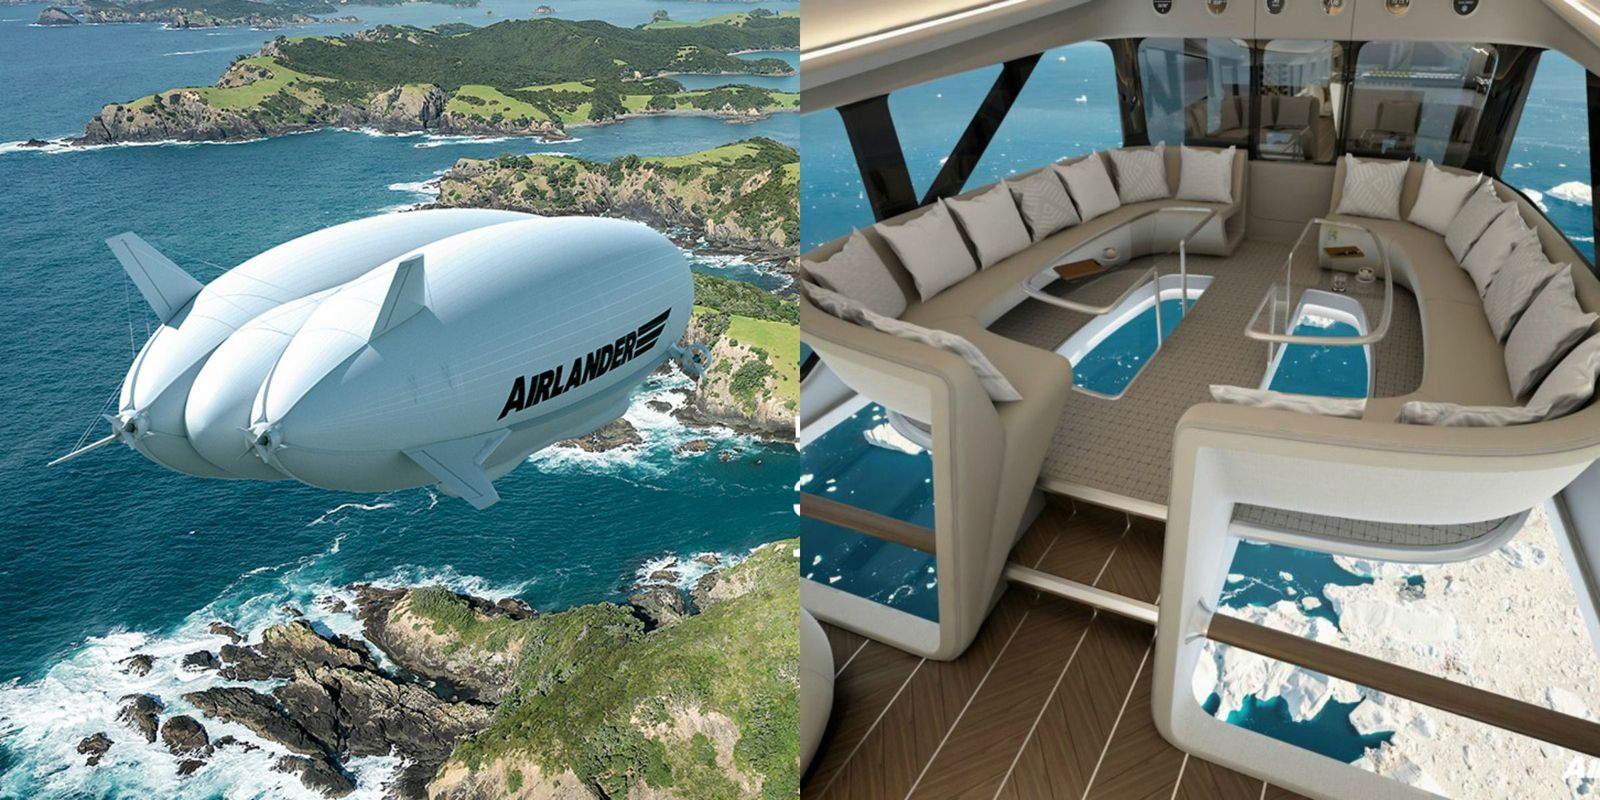 The Commercial Airlander 10 Is Basically a Flying Mansion